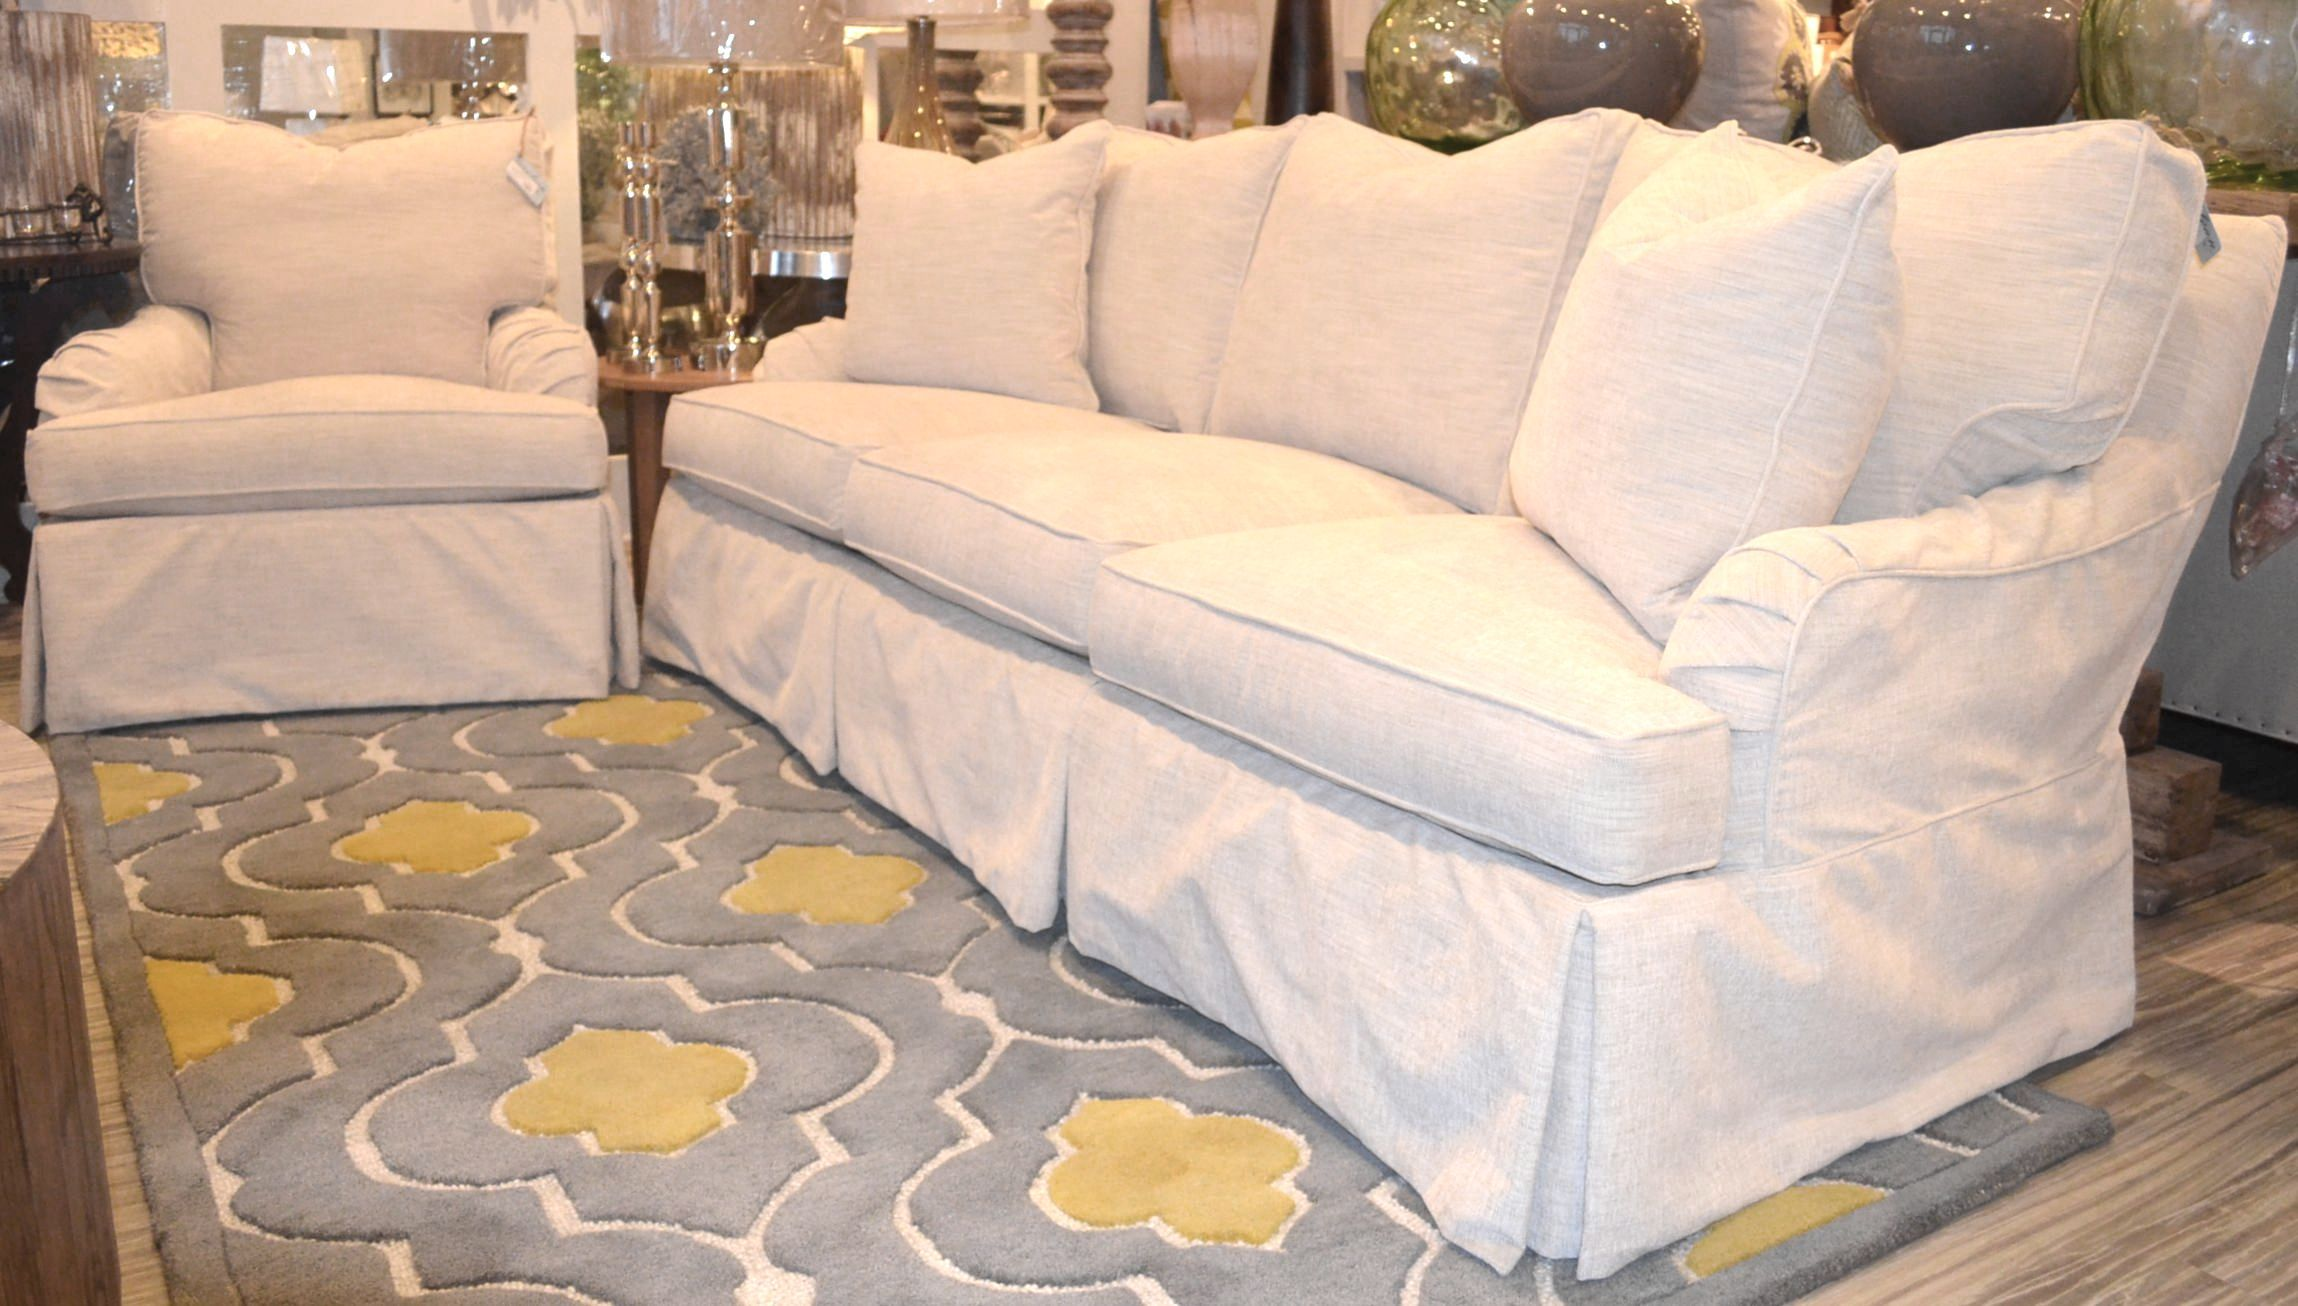 This Gorgeous Three Seat Slipcover Sofa And Slipcover Chair By Lee